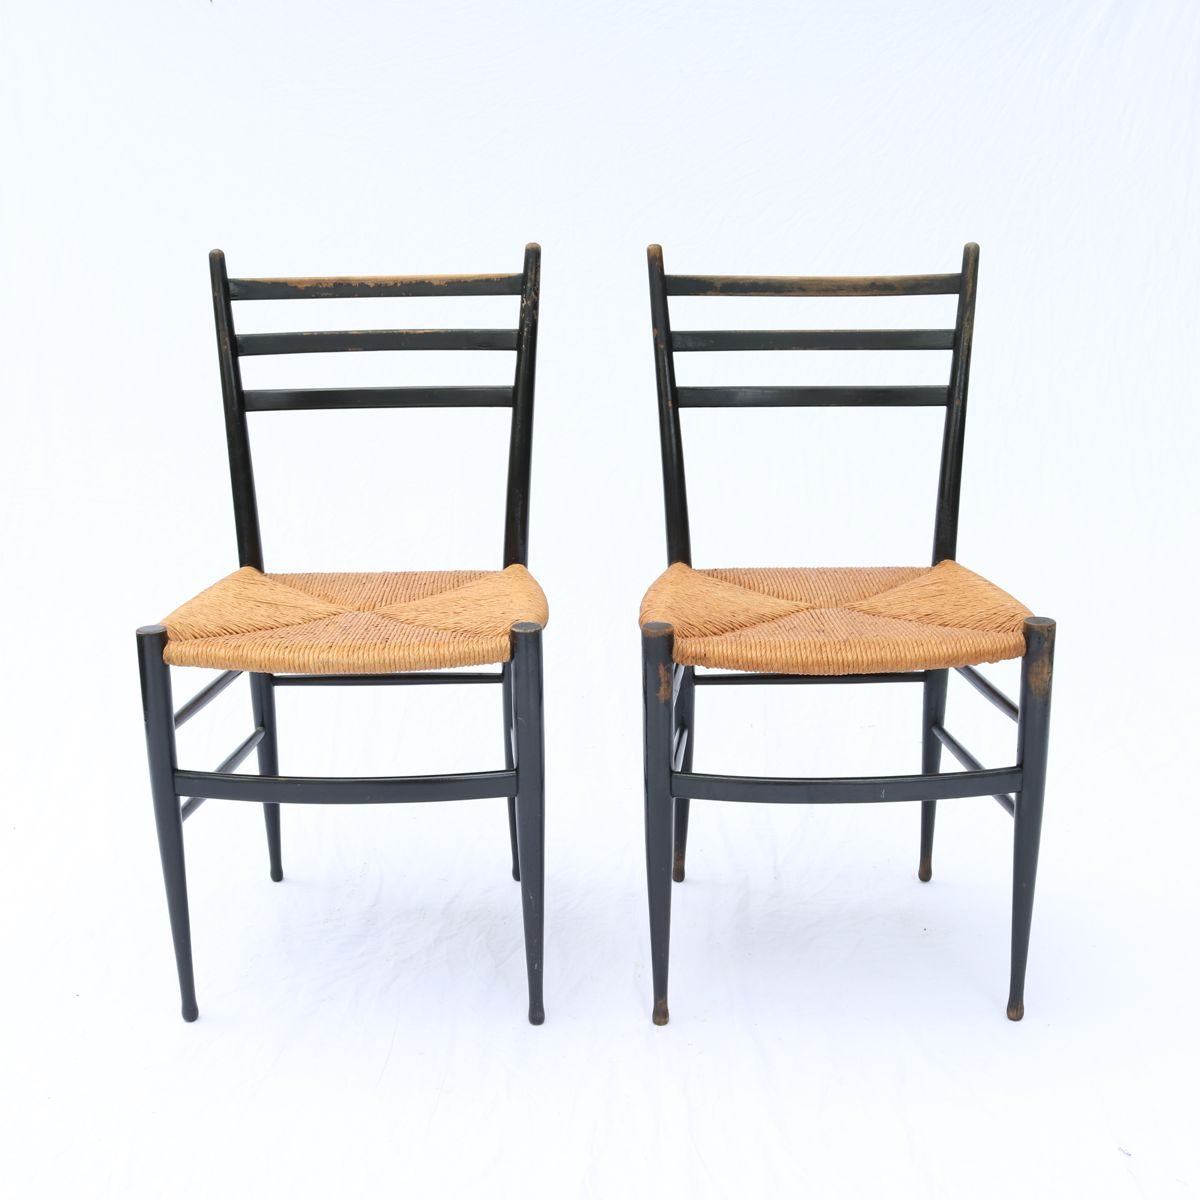 Outstanding Pair Vintage Chiavarine Chairs Marked Made In Italy Gio Pabps2019 Chair Design Images Pabps2019Com